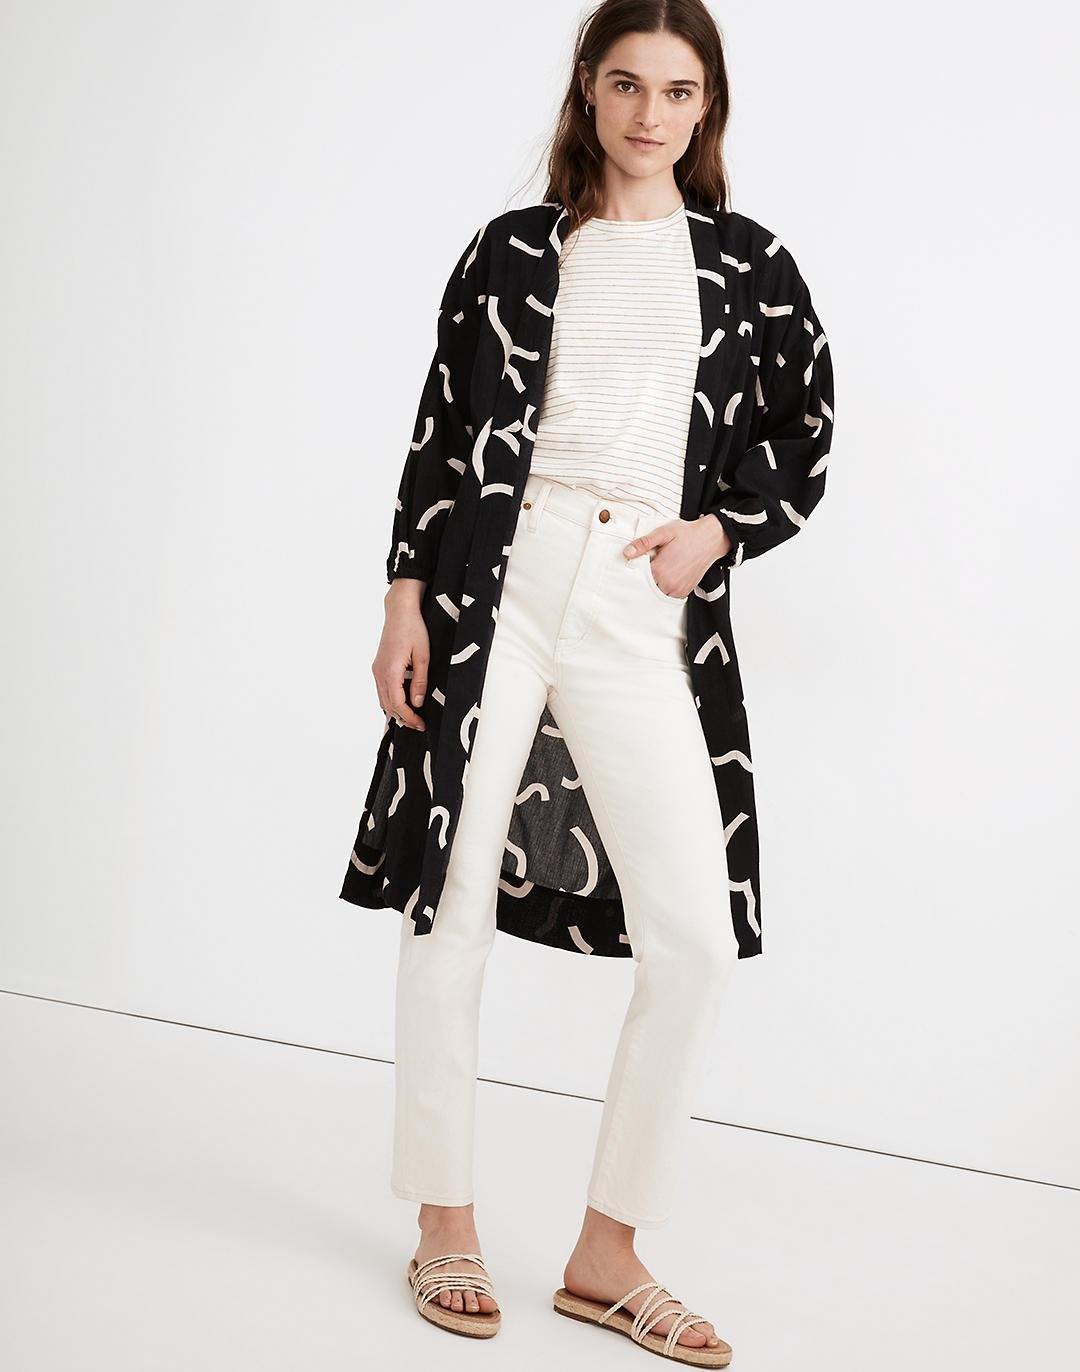 Robe Jacket in Bold Squiggles